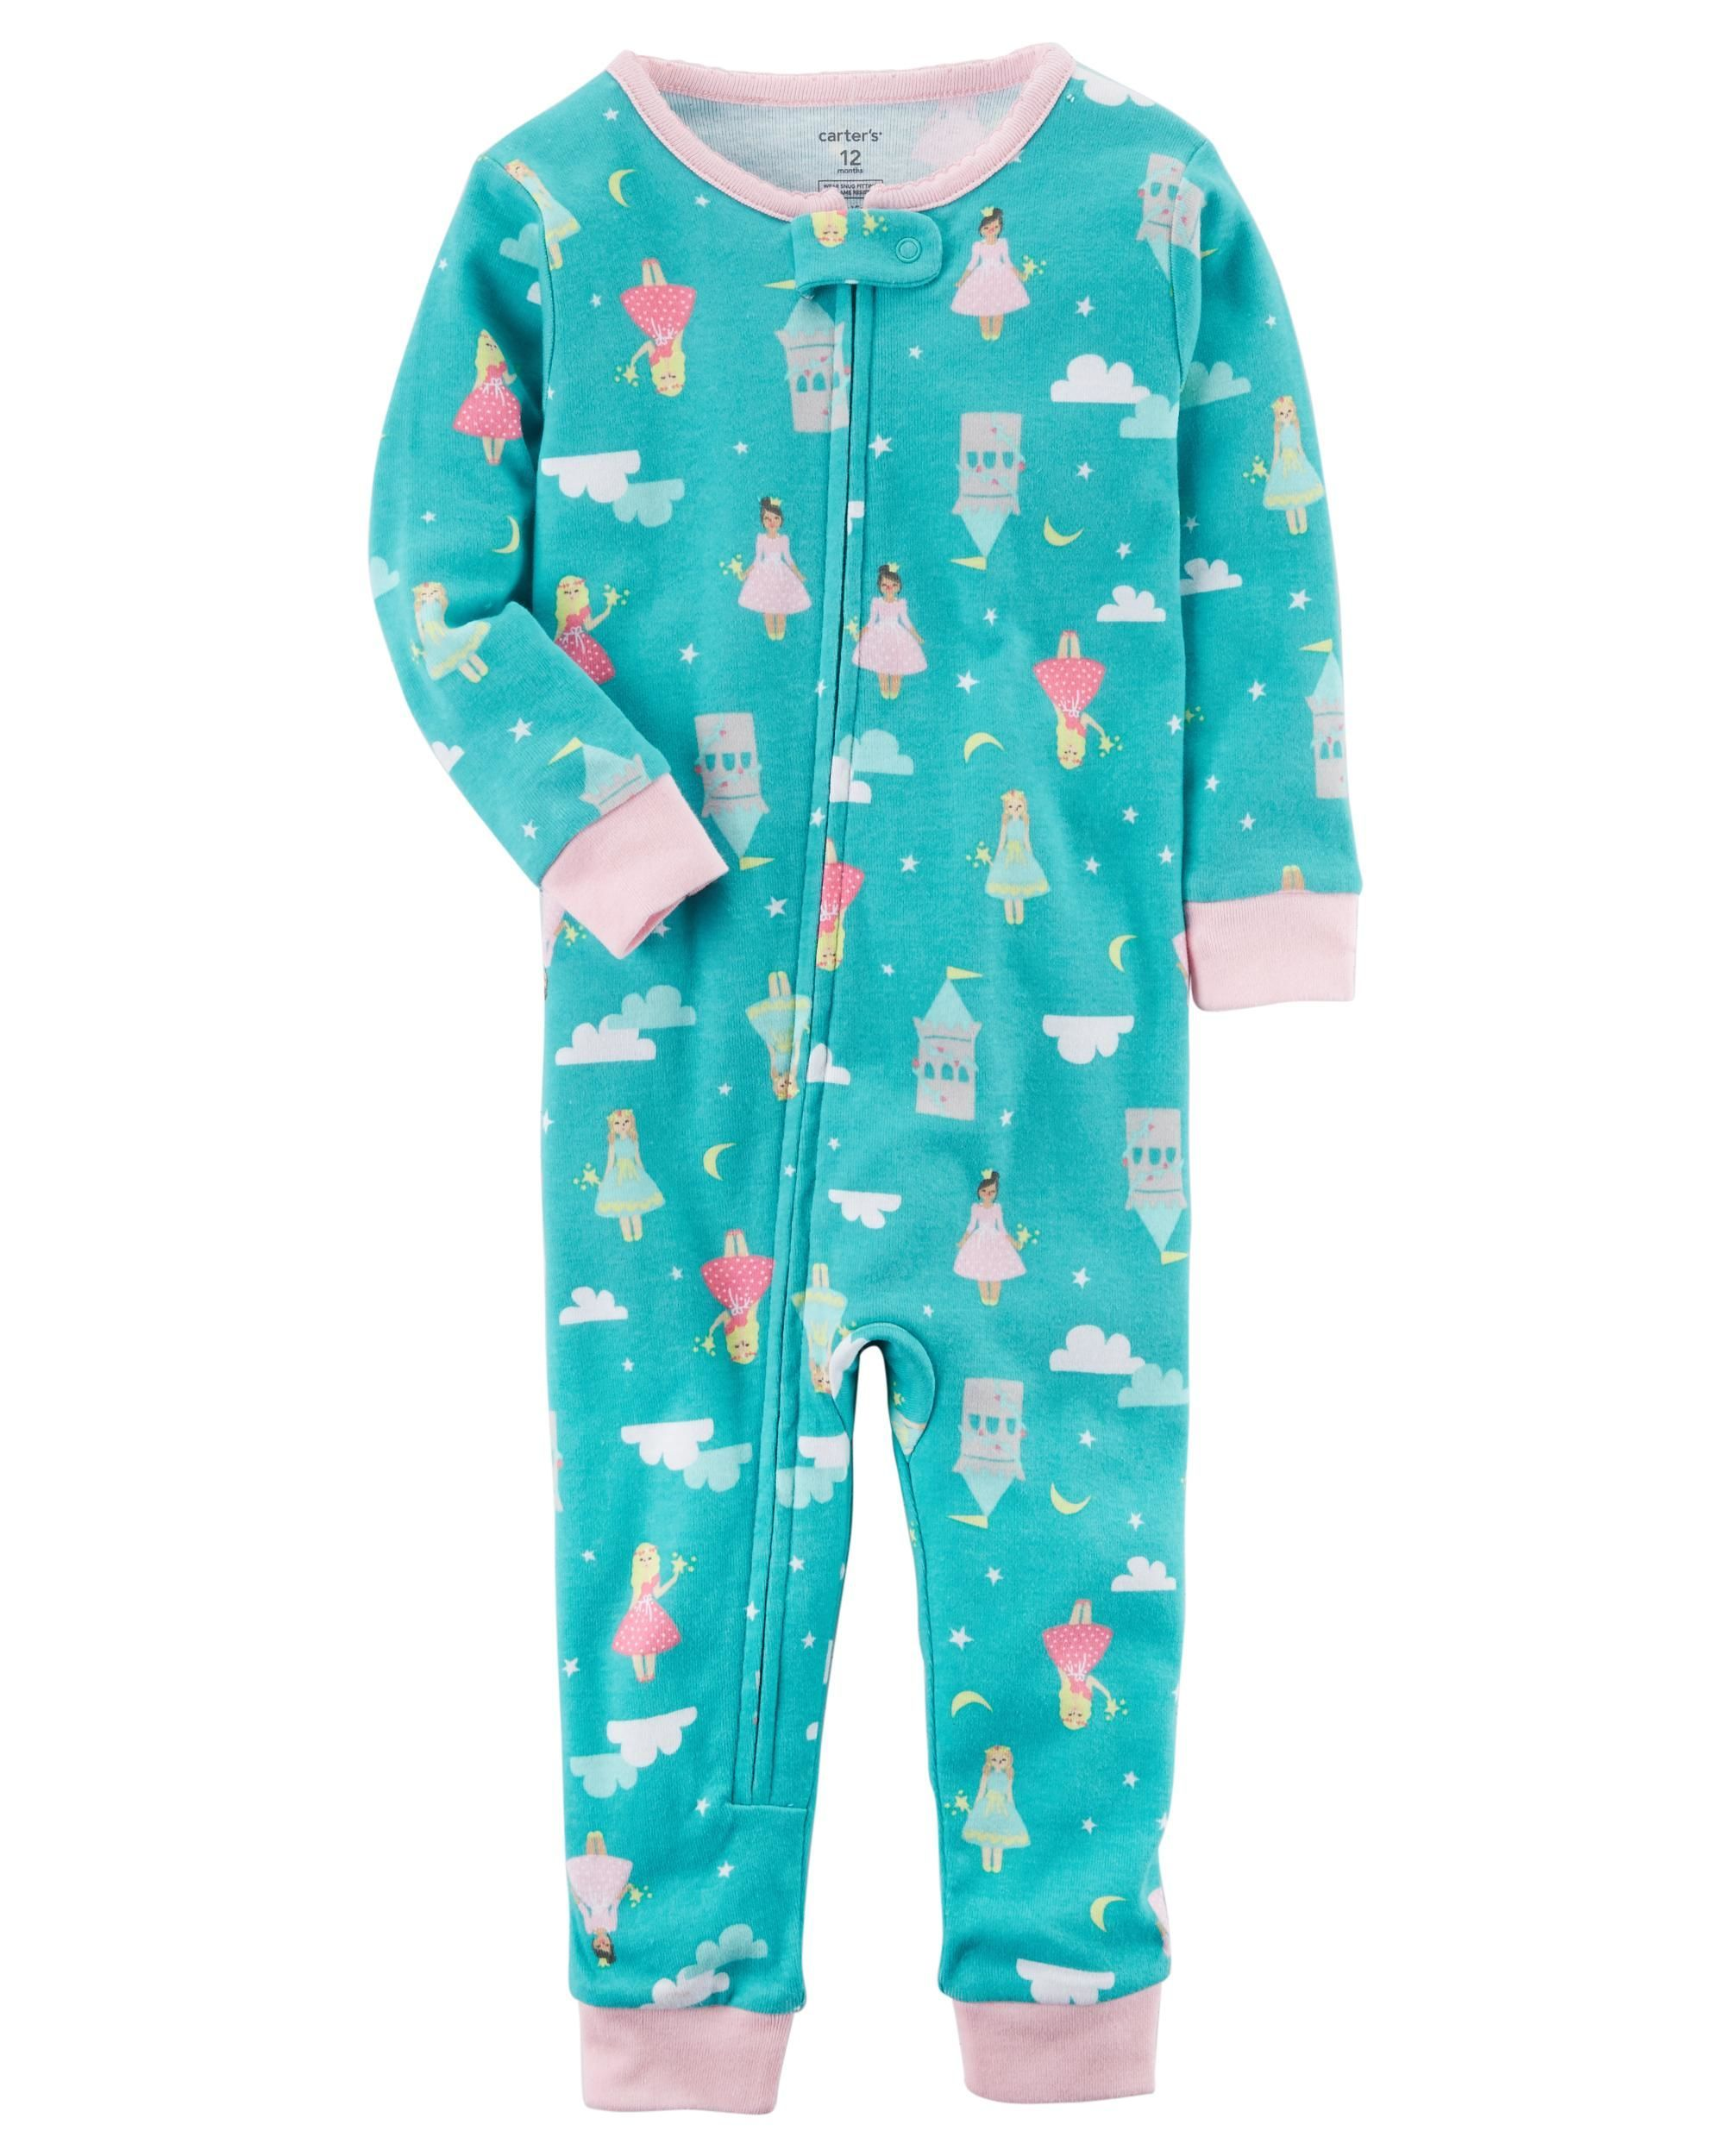 43c4fb543a8c 1-Piece Snug Fit Cotton Footless PJs